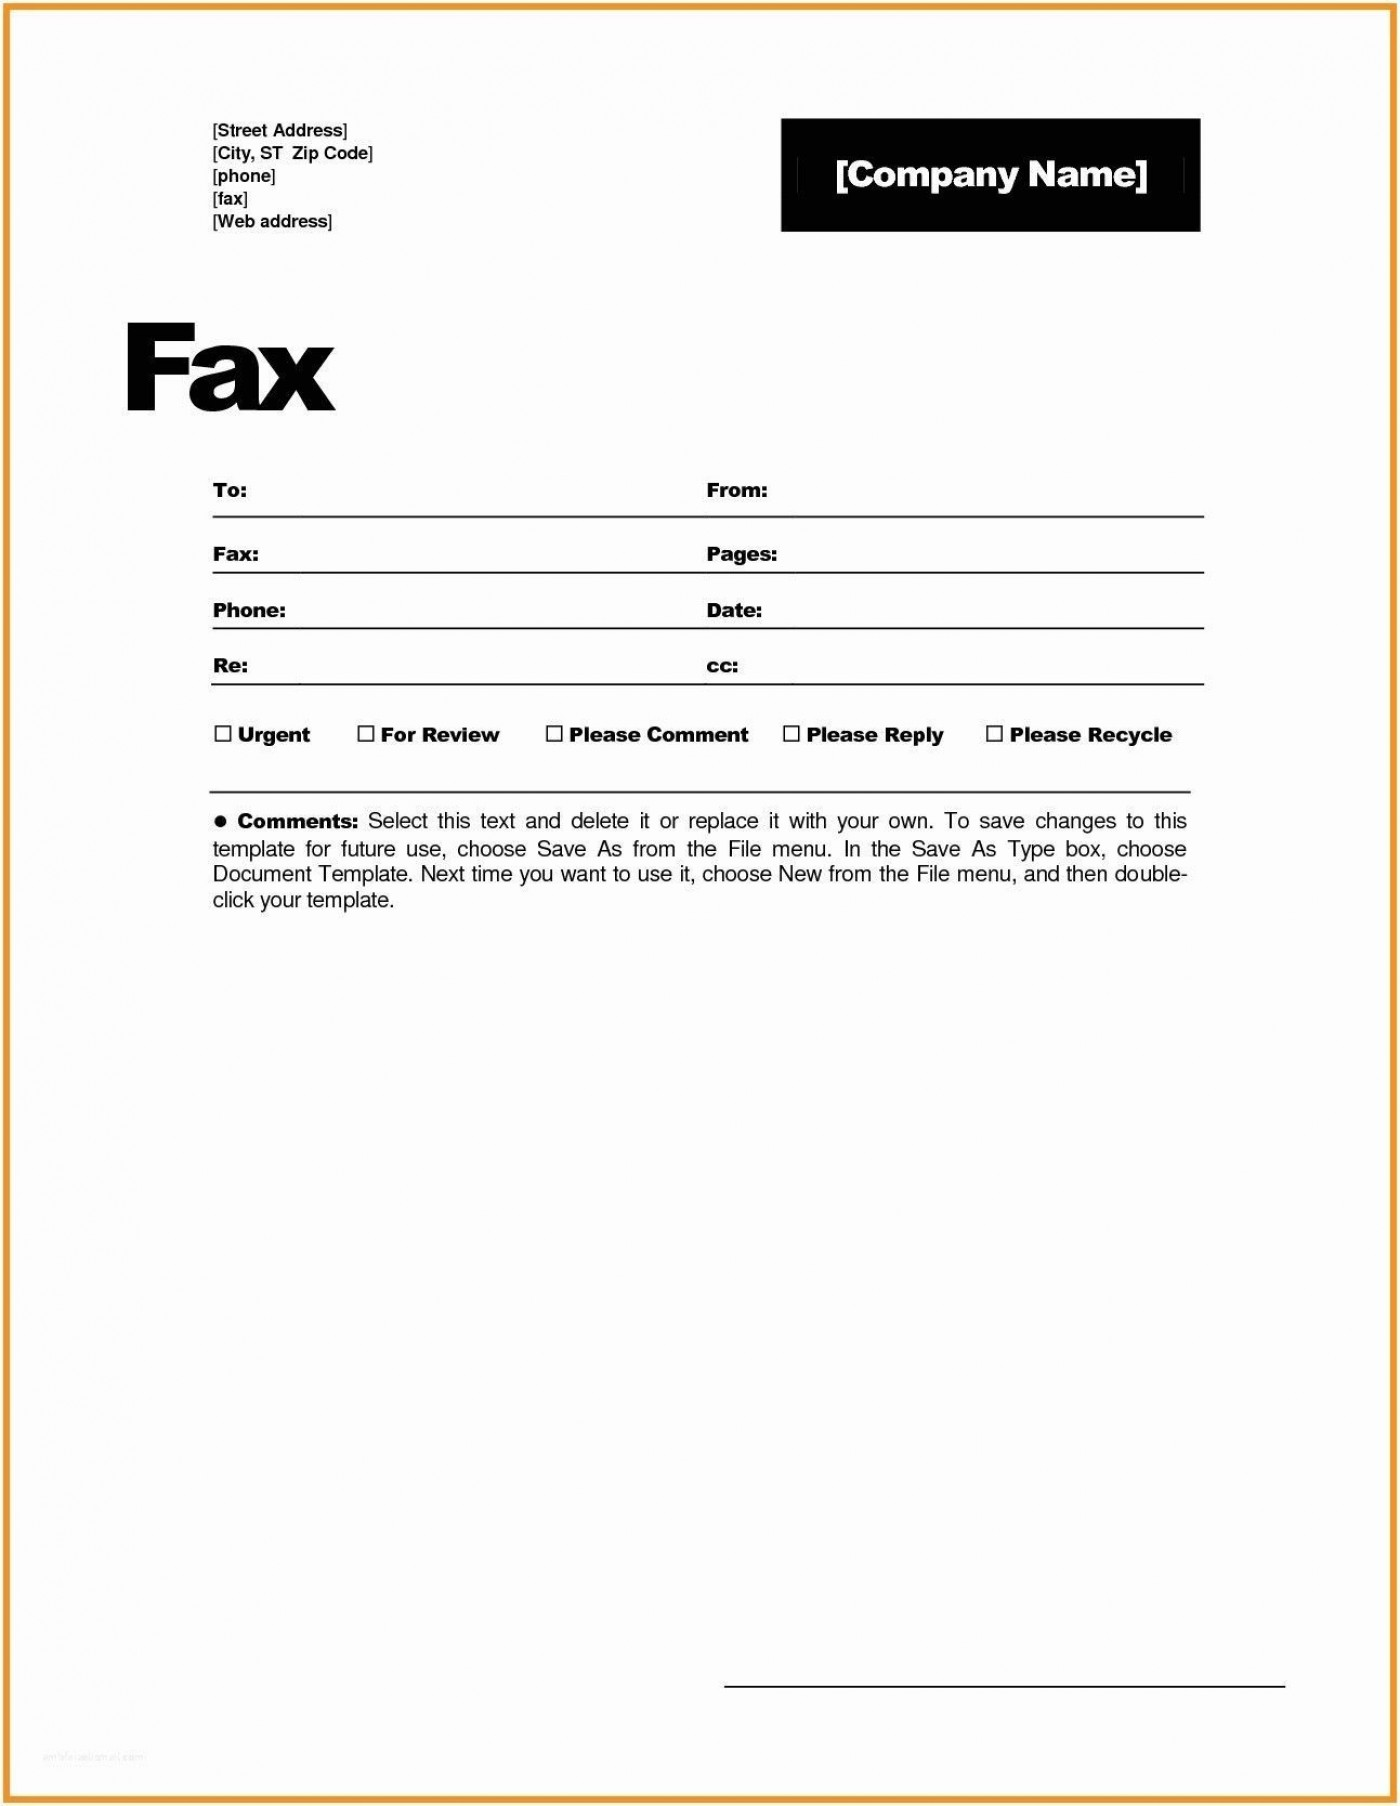 001 Magnificent General Fax Cover Letter Template Photo  Sheet Word Confidential Example1400